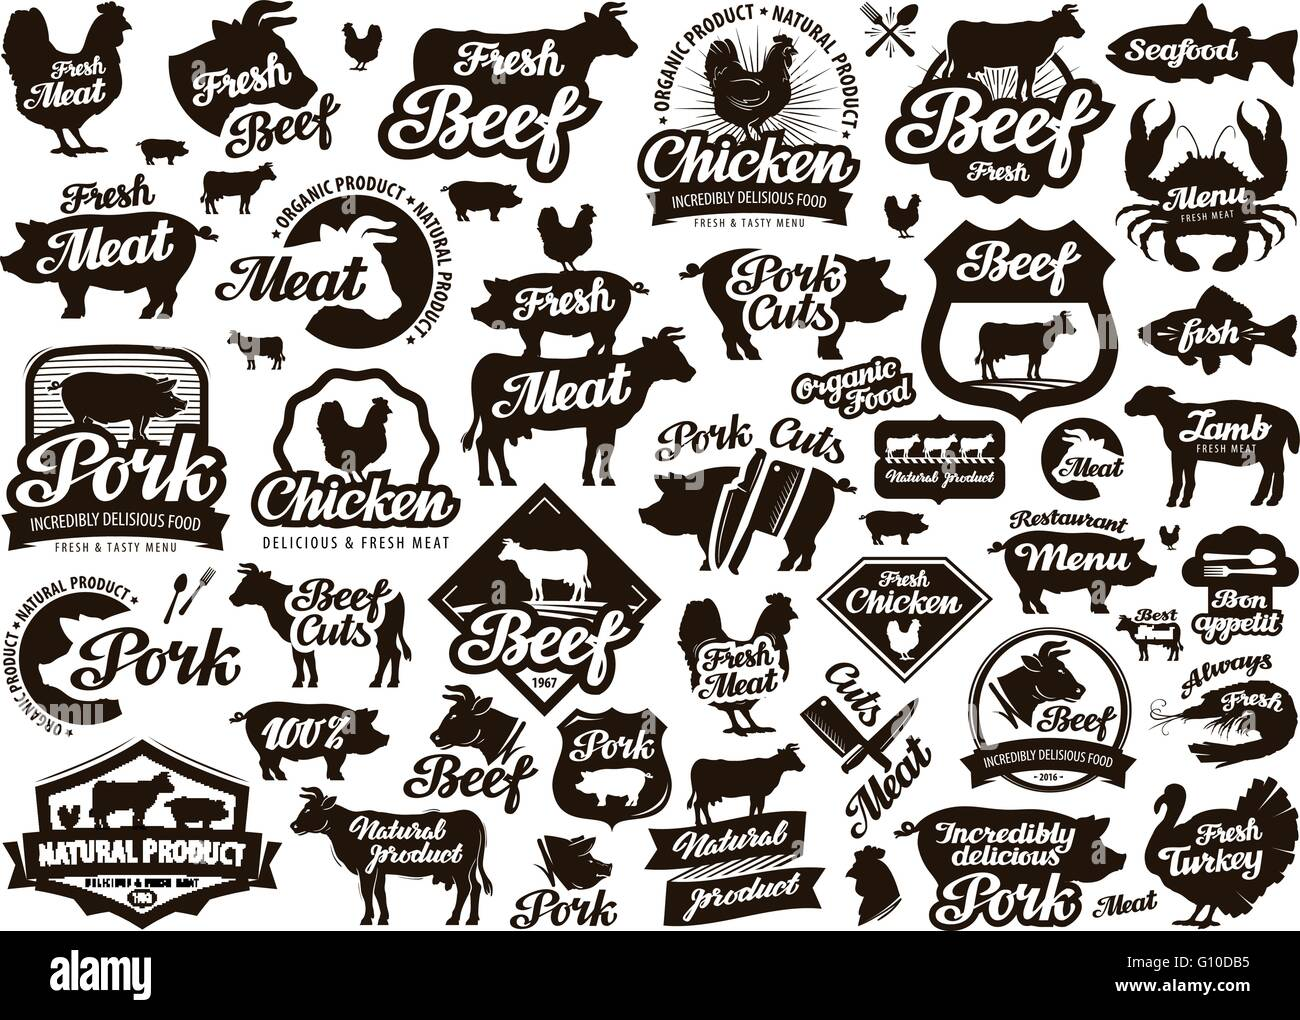 Restaurant Cafe Vector Logo Food Meat Or Menu Cooking Icon Stock Vector Image Art Alamy